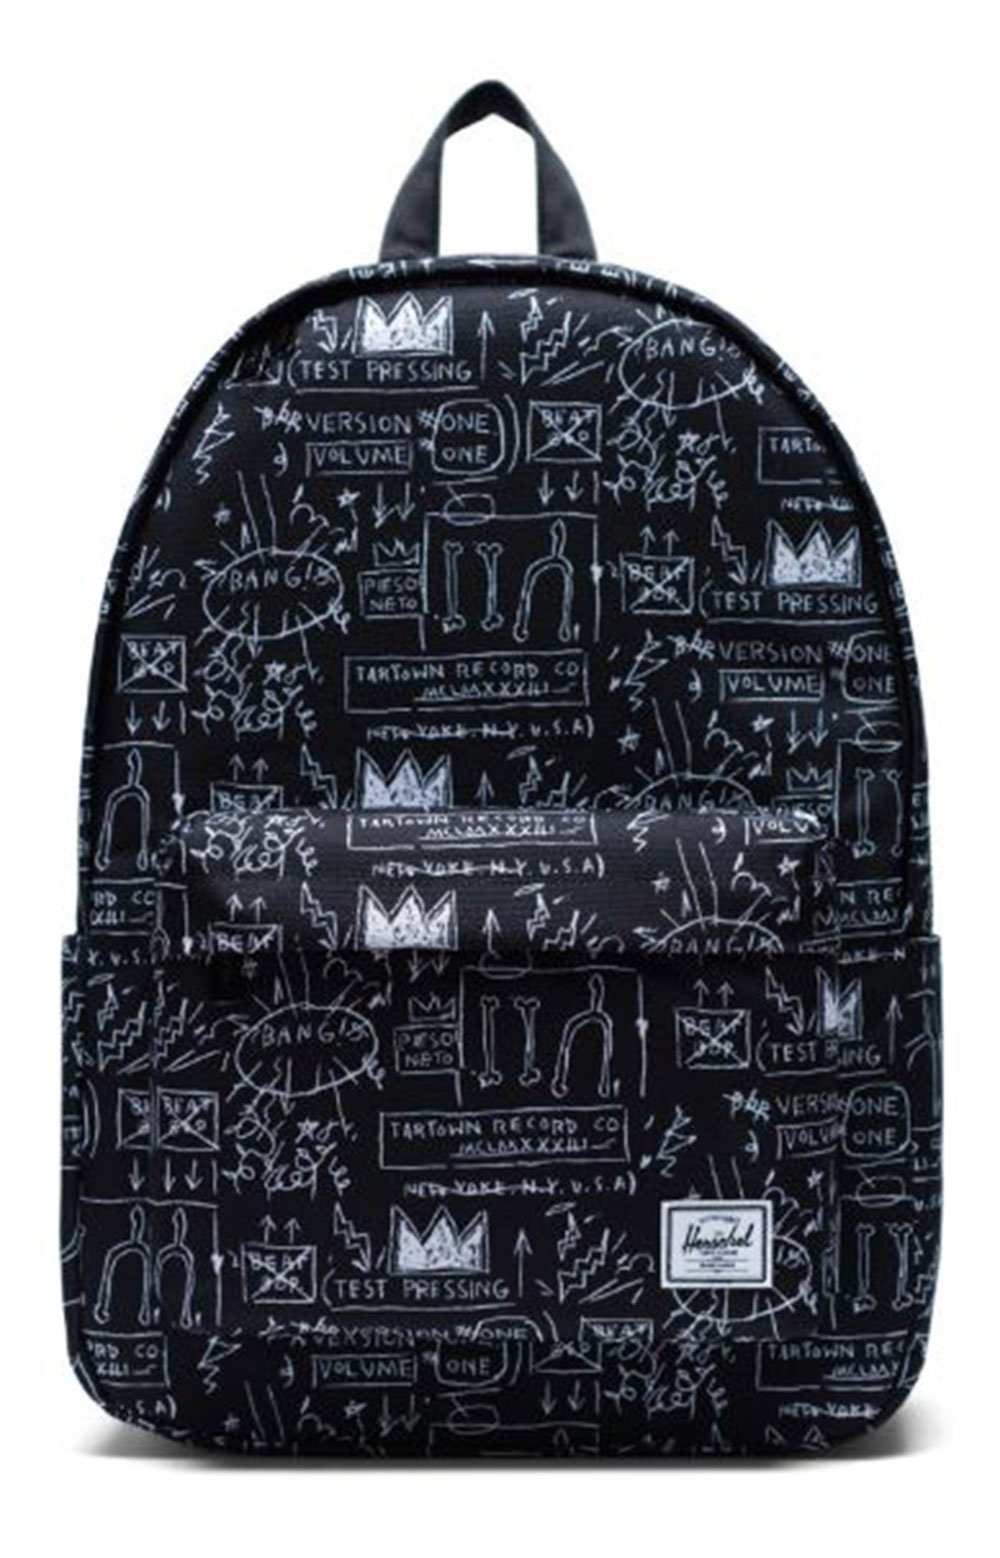 Basquiat Classic Backpack XL - Basquiat Beat Bop